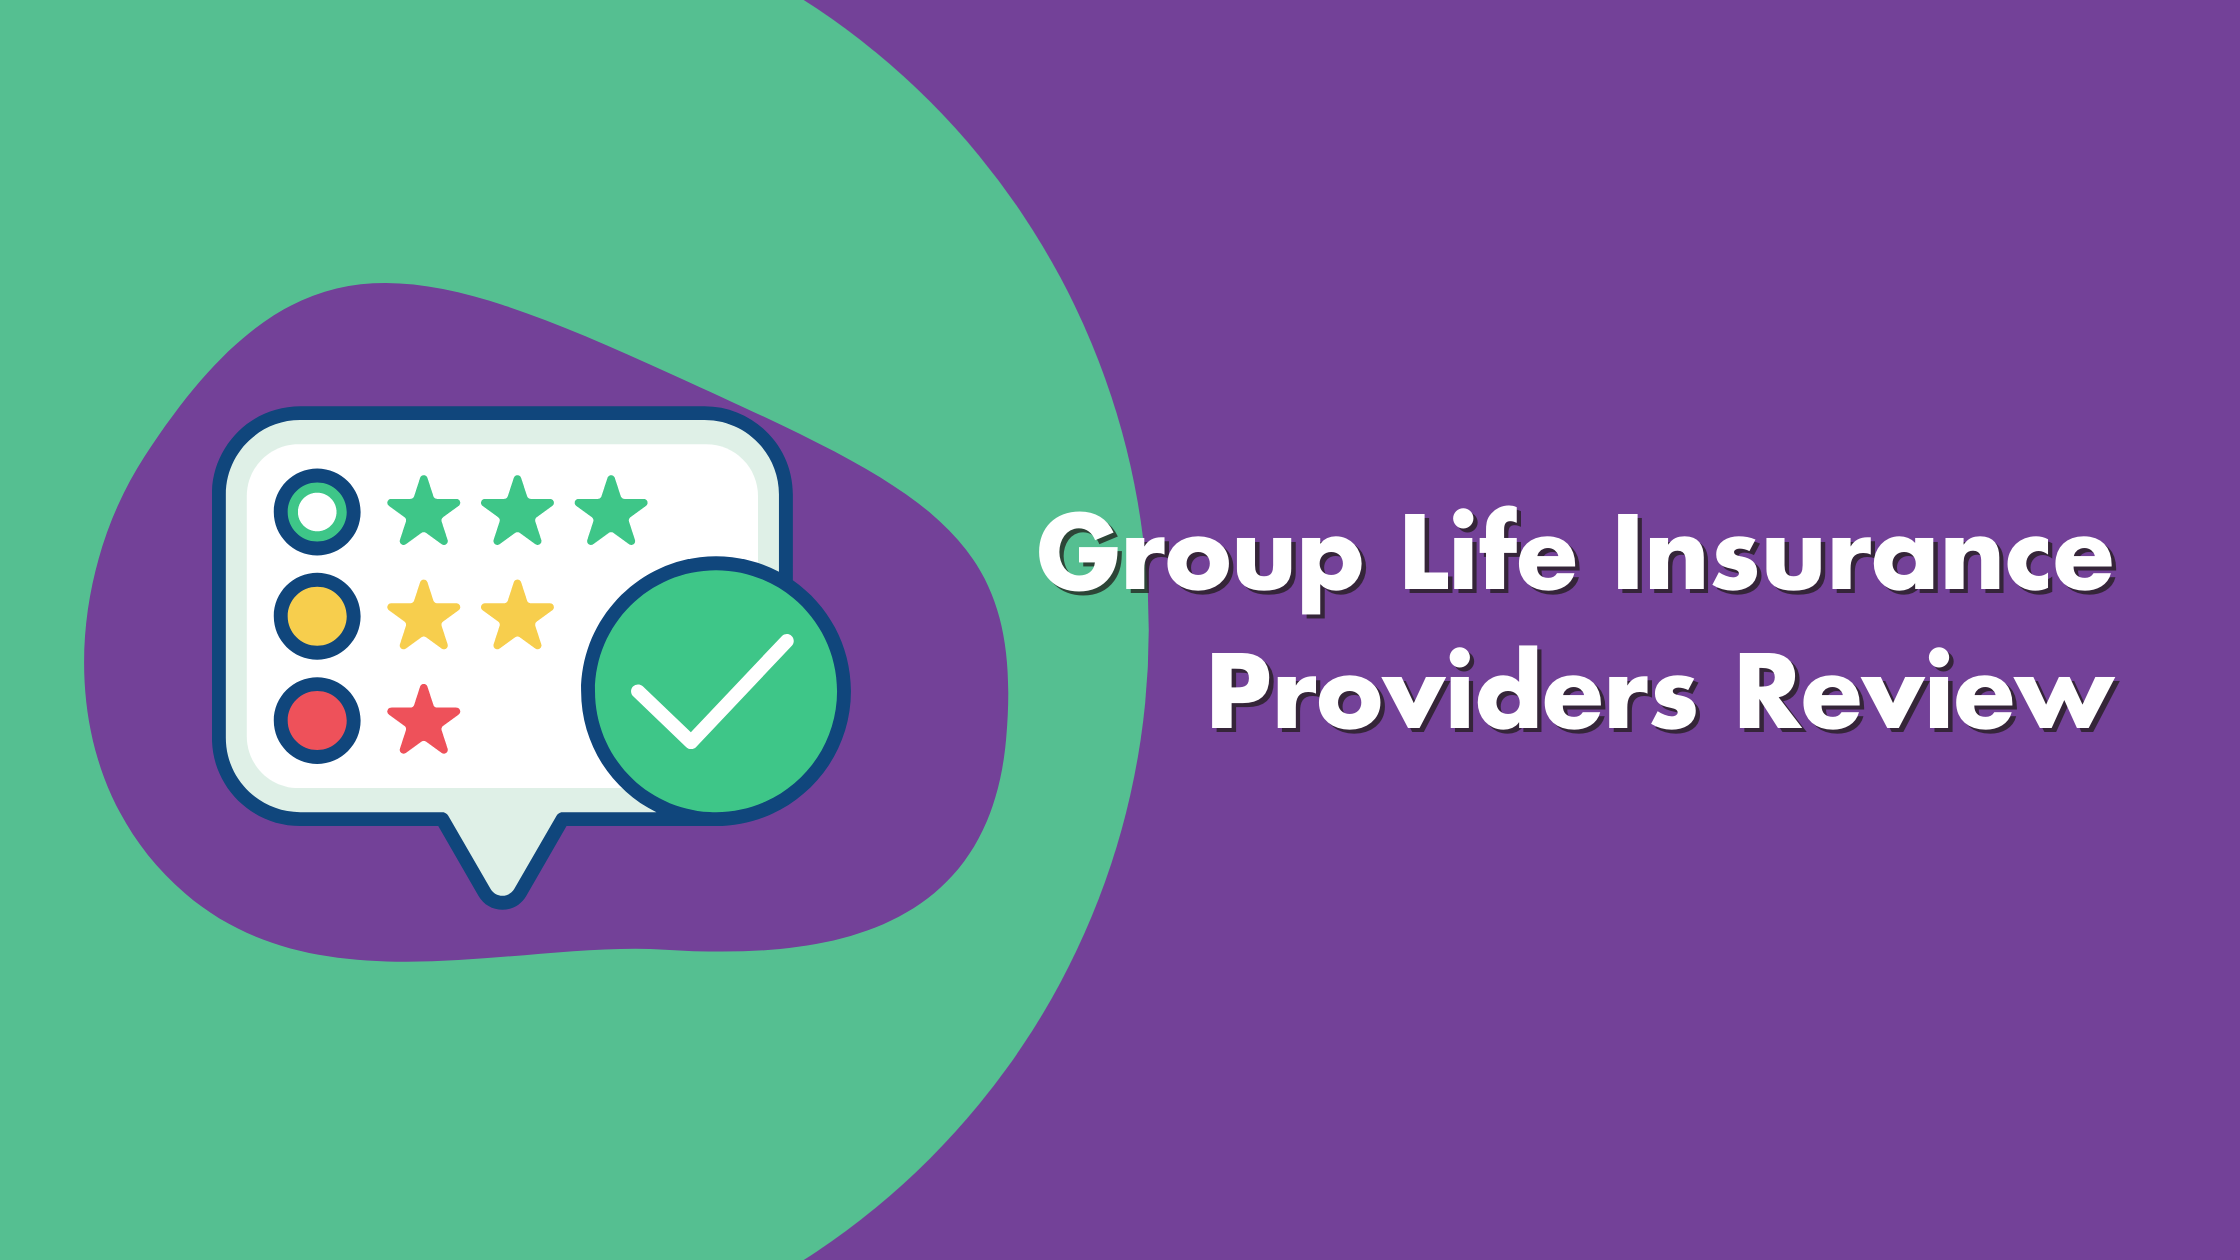 Group Life Insurance Providers Review